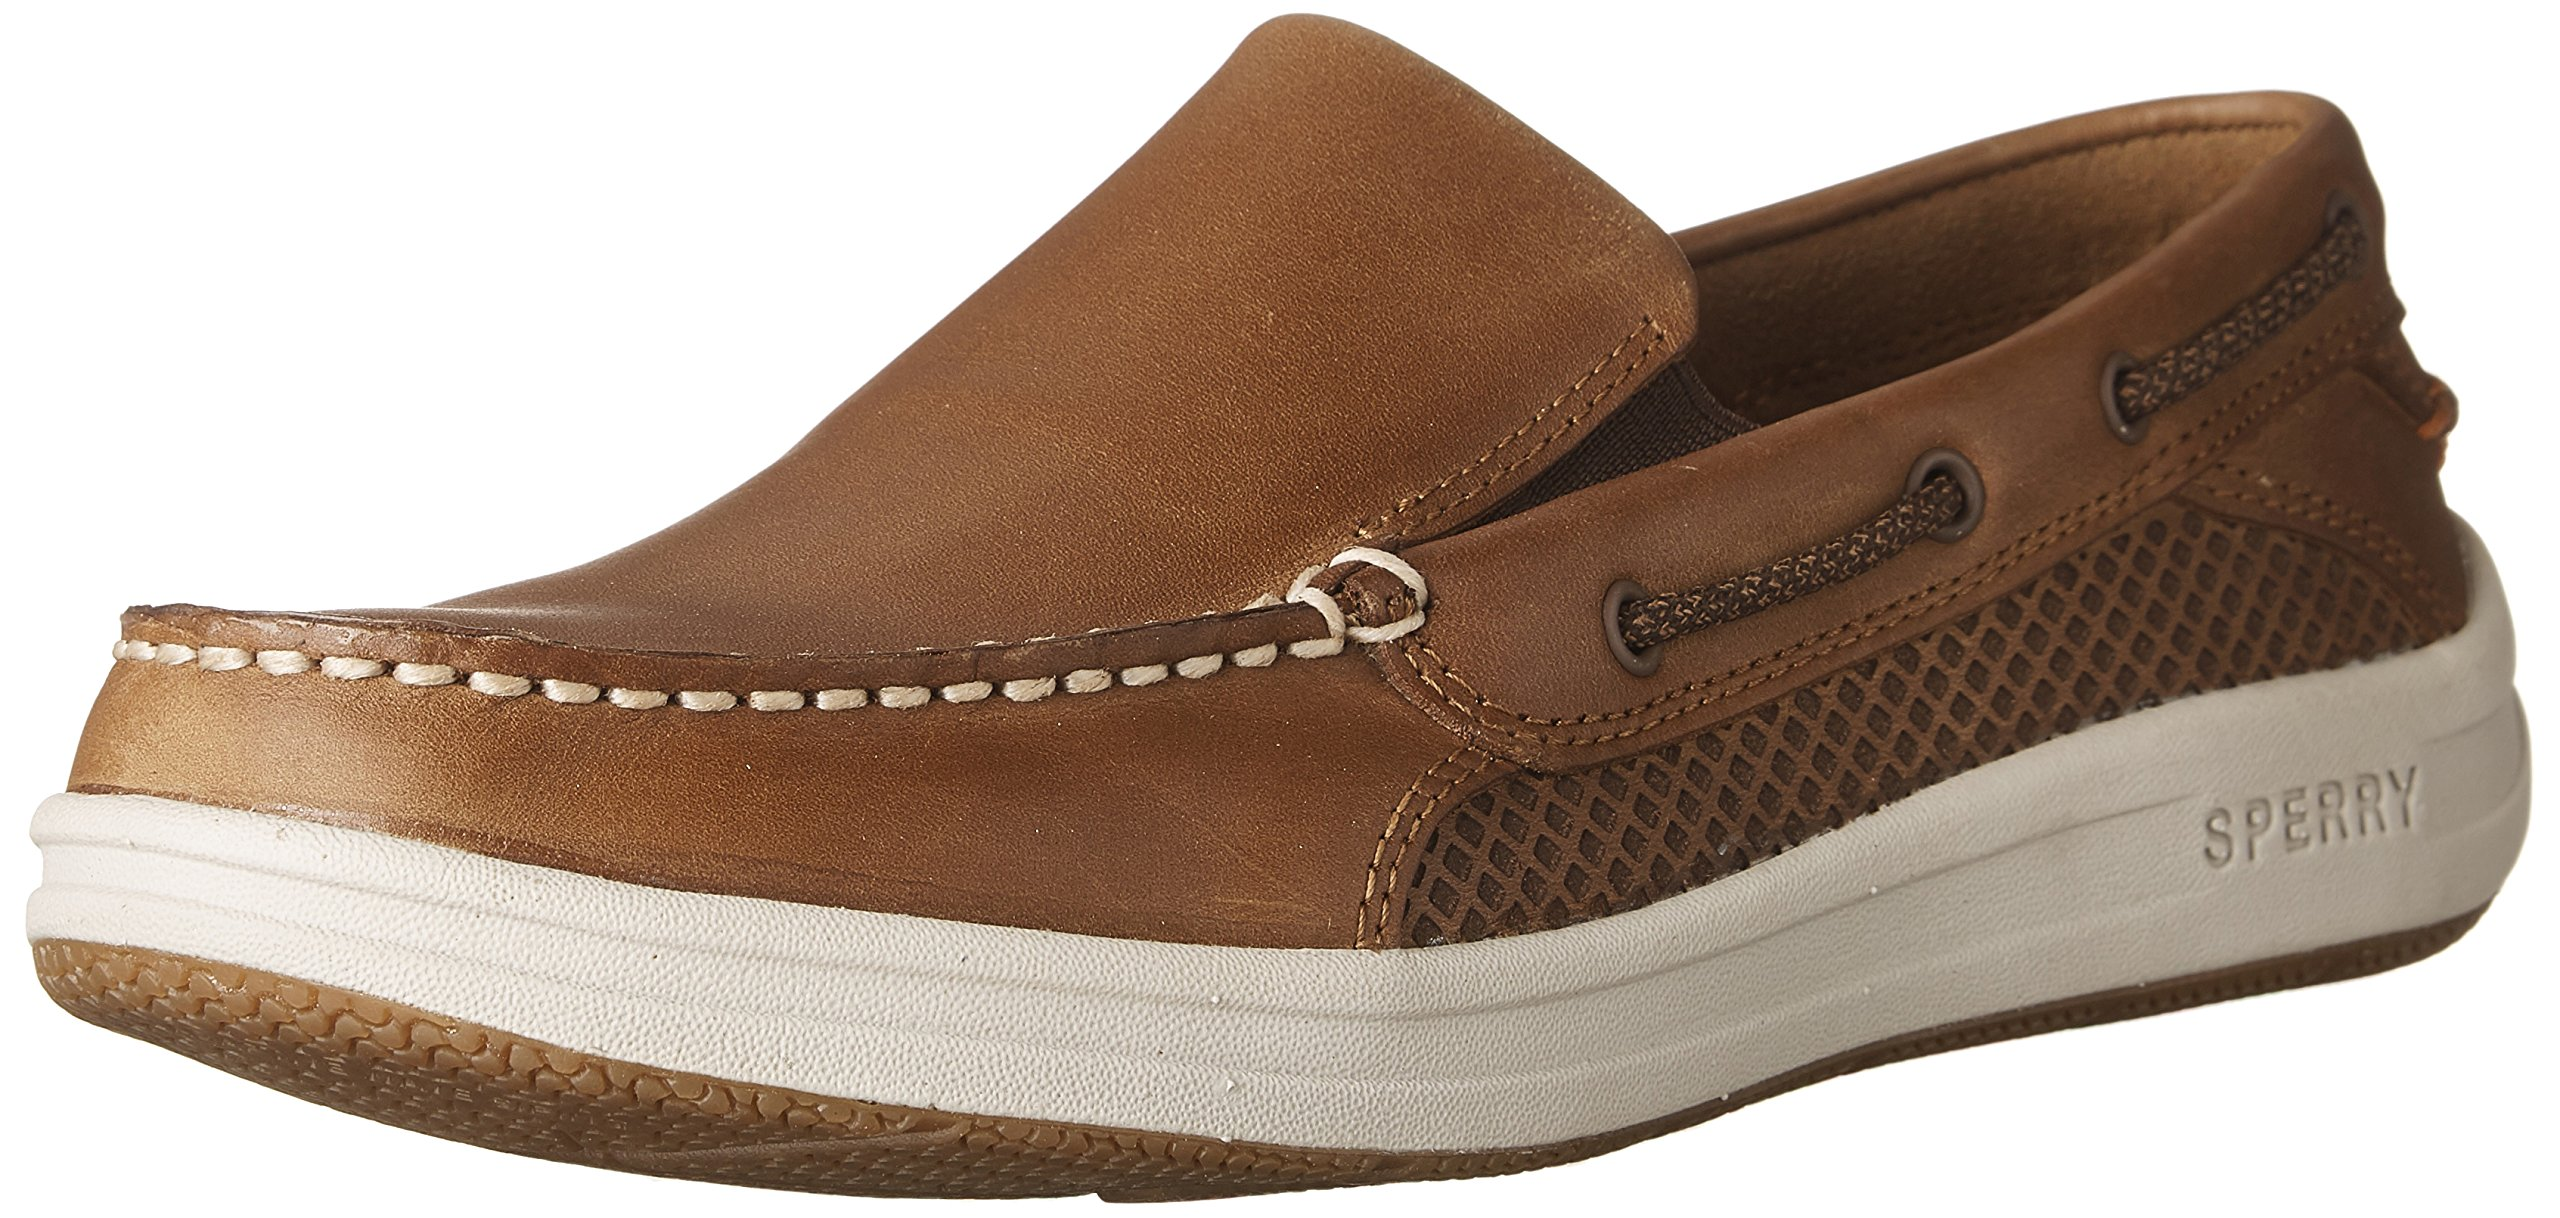 Sperry Top-Sider Men's Gamefish Slip On Boat Shoe, Dark Tan, 10.5 M US by Sperry Top-Sider (Image #1)